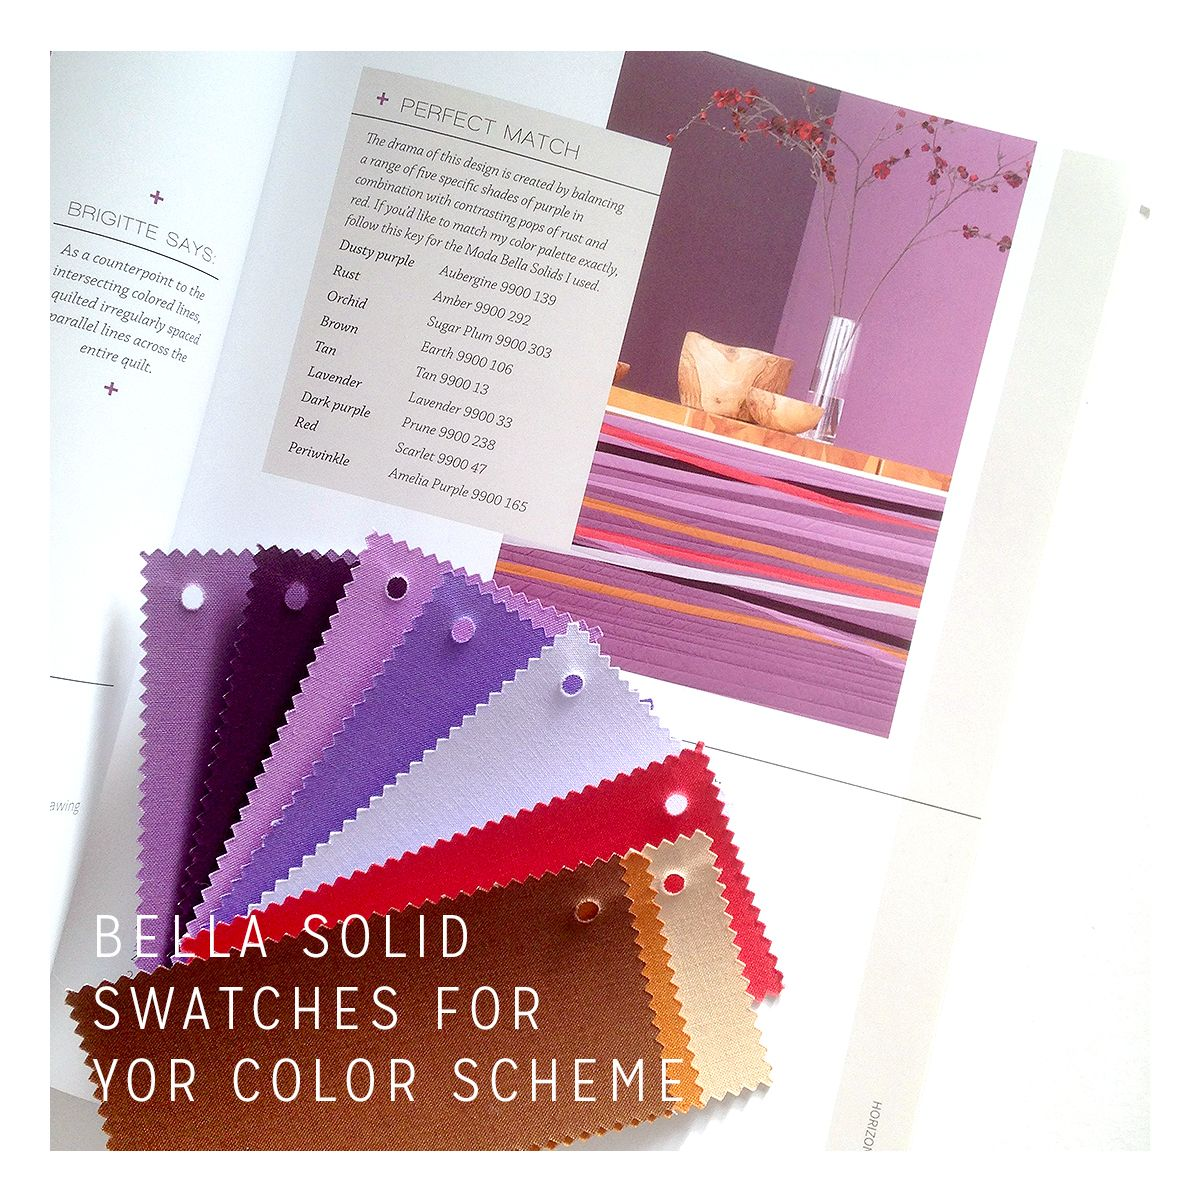 Book color scheme - Some Help With Finding The Right Color Scheme For A Modern Quilt The Book Zen